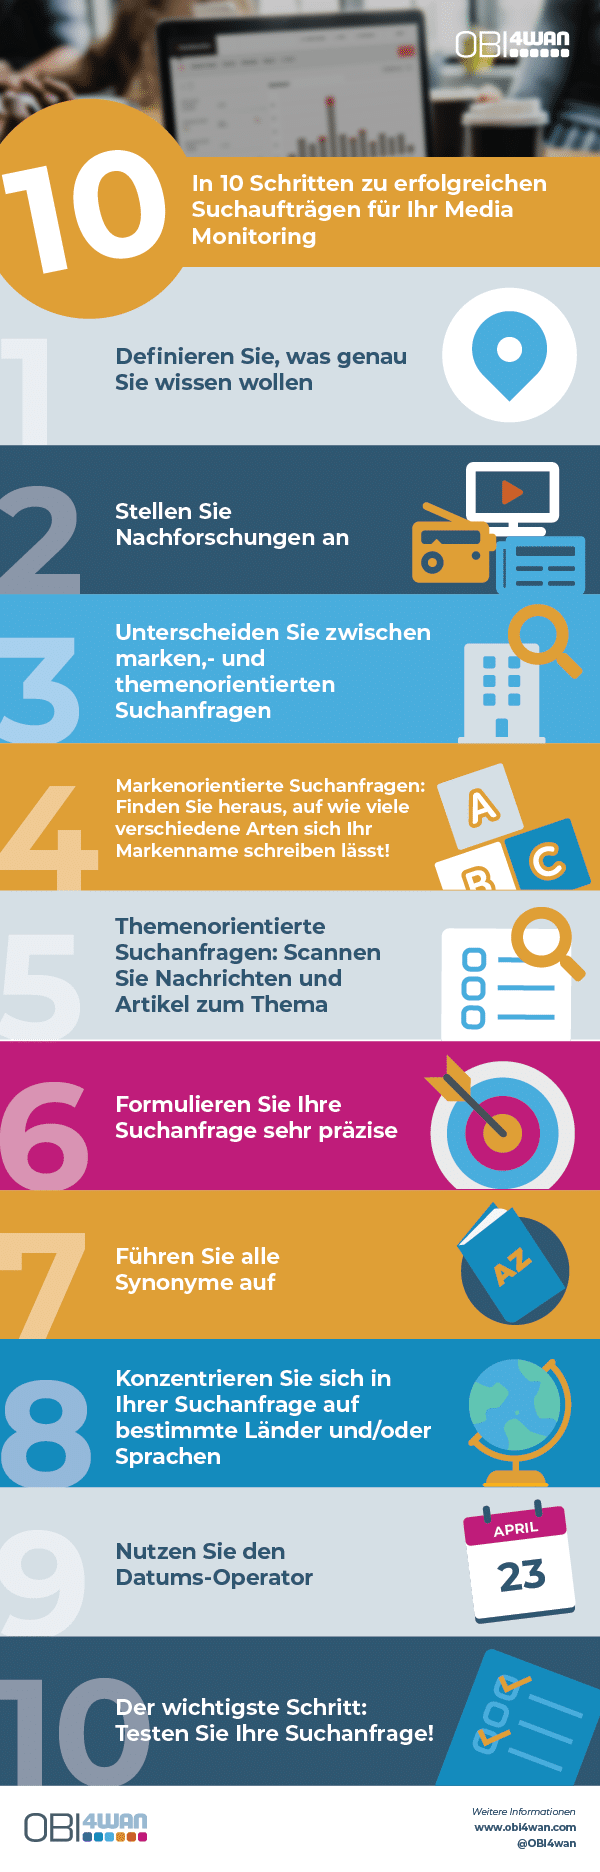 10-schritte-guide-suchanfragen-media-monitoring